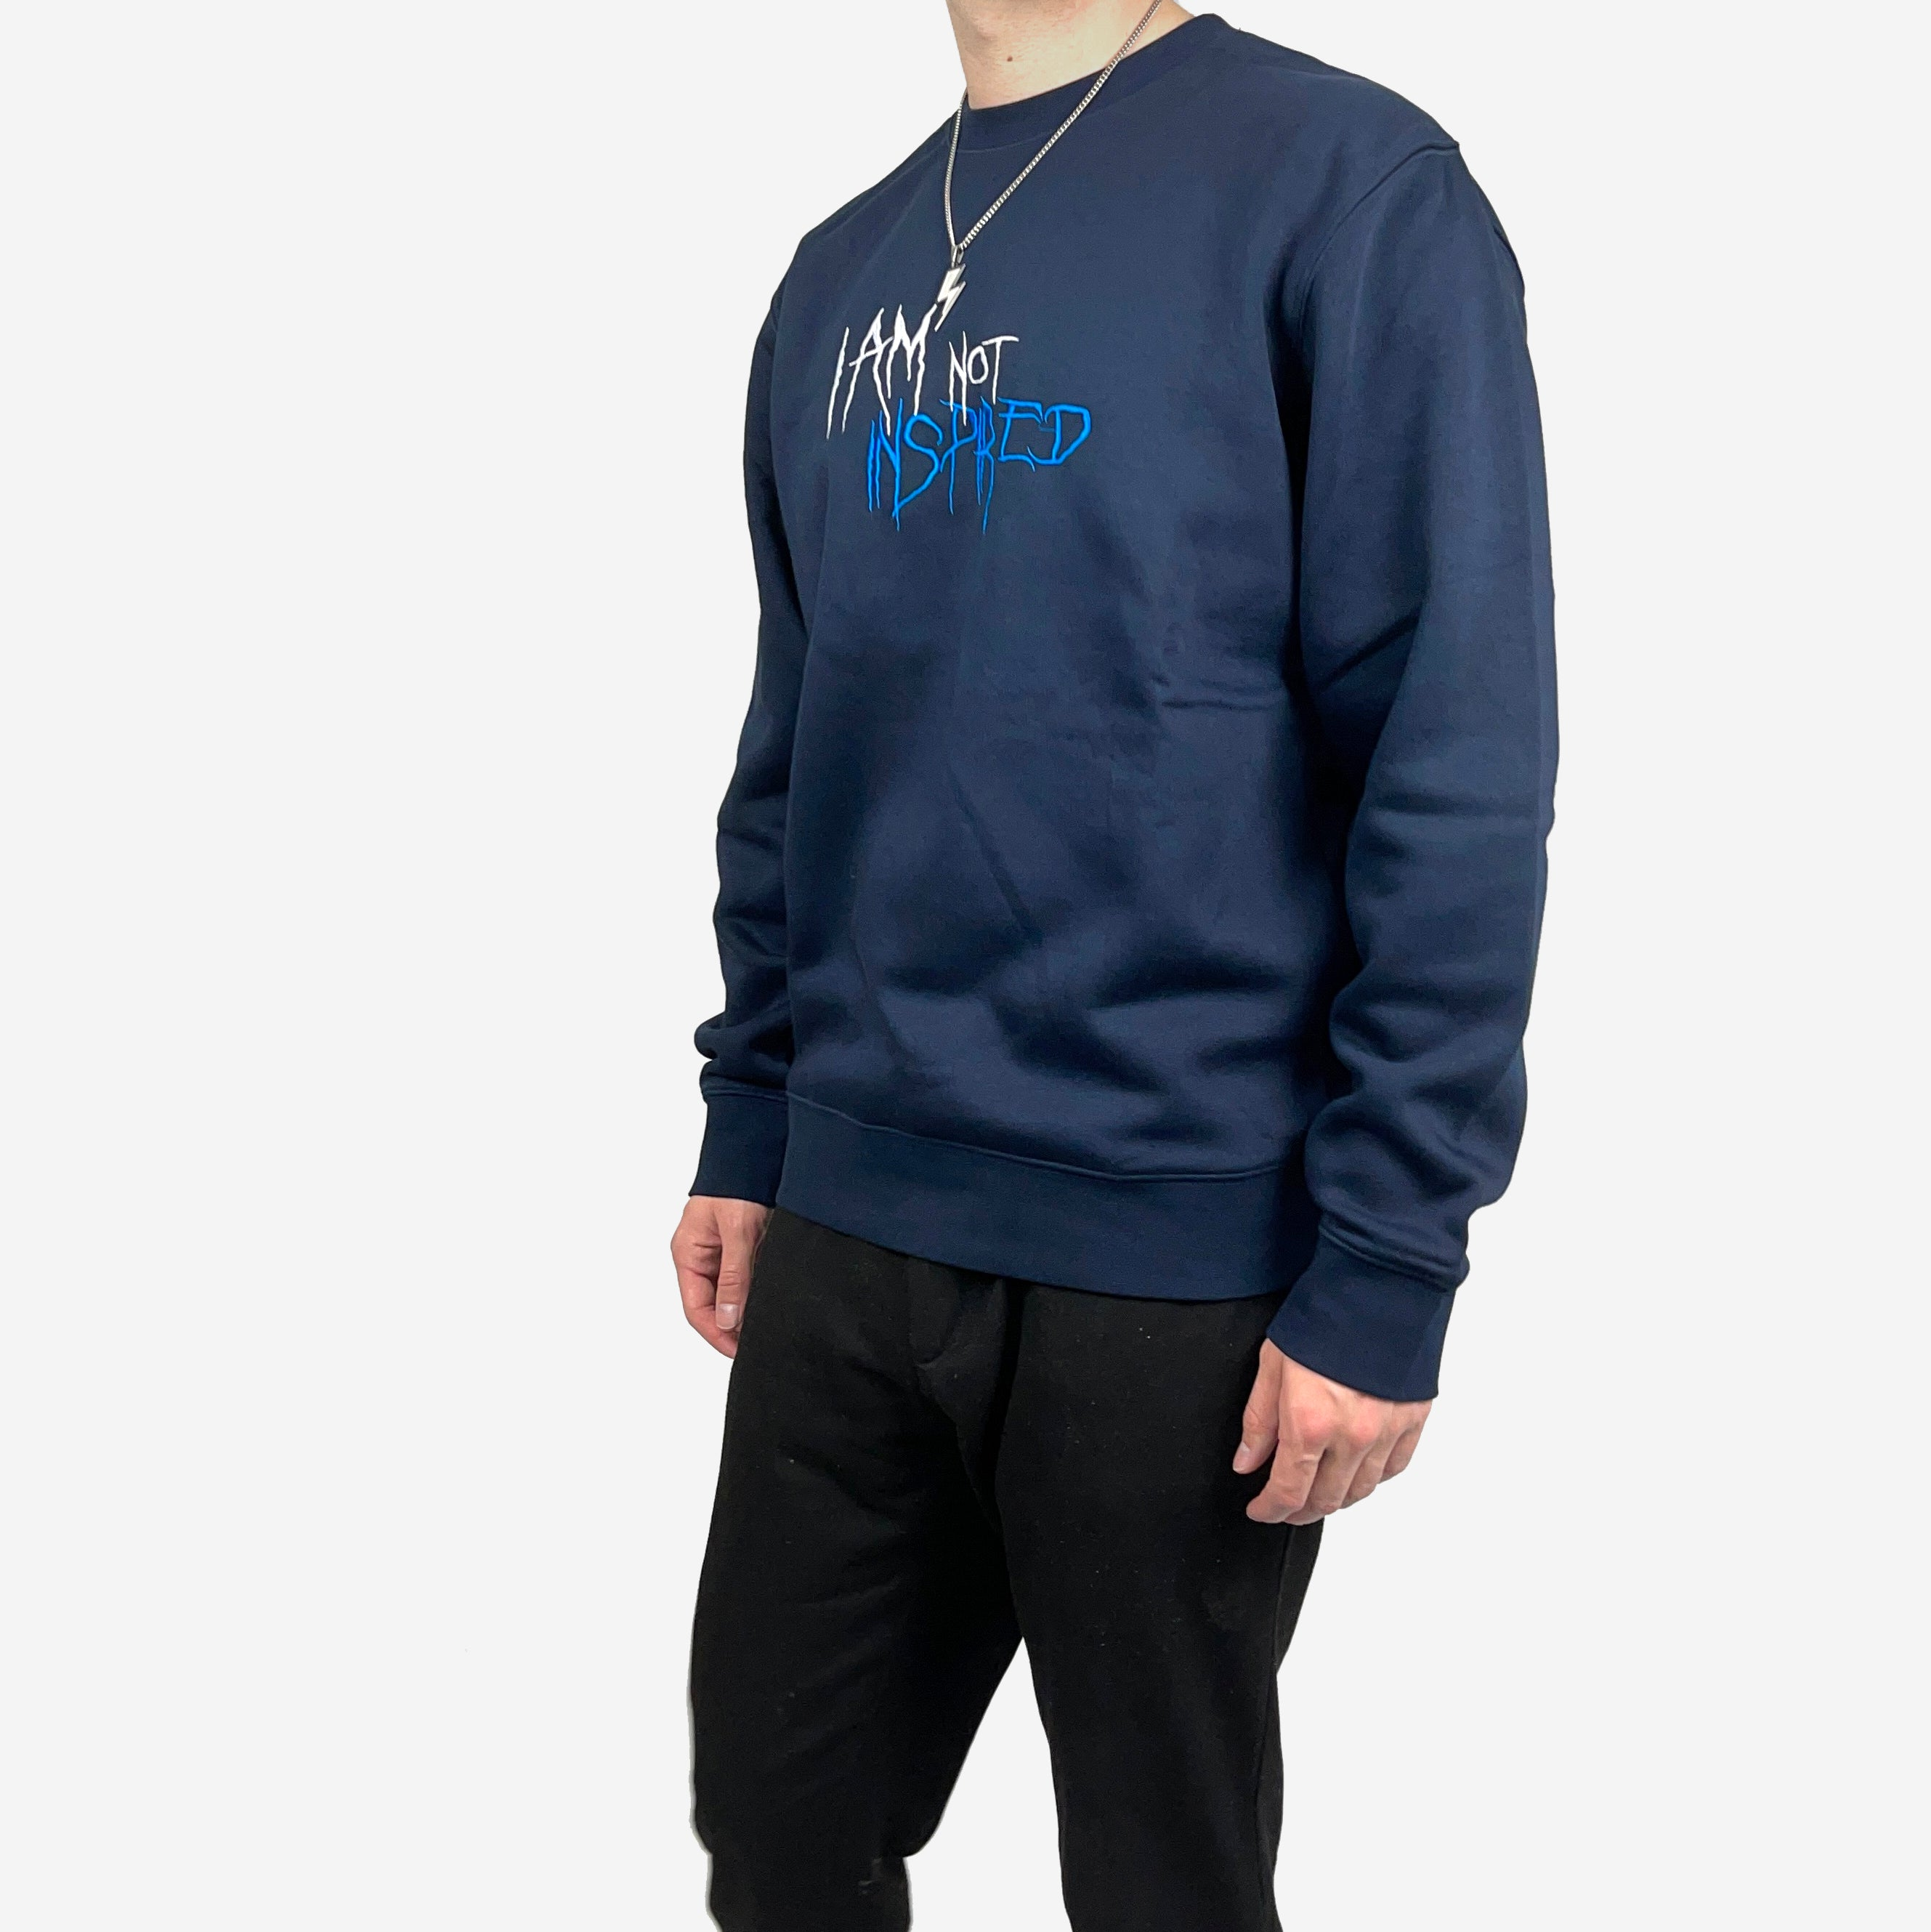 INSPIRED SWEATSHIRT - NAVY - BRODERING